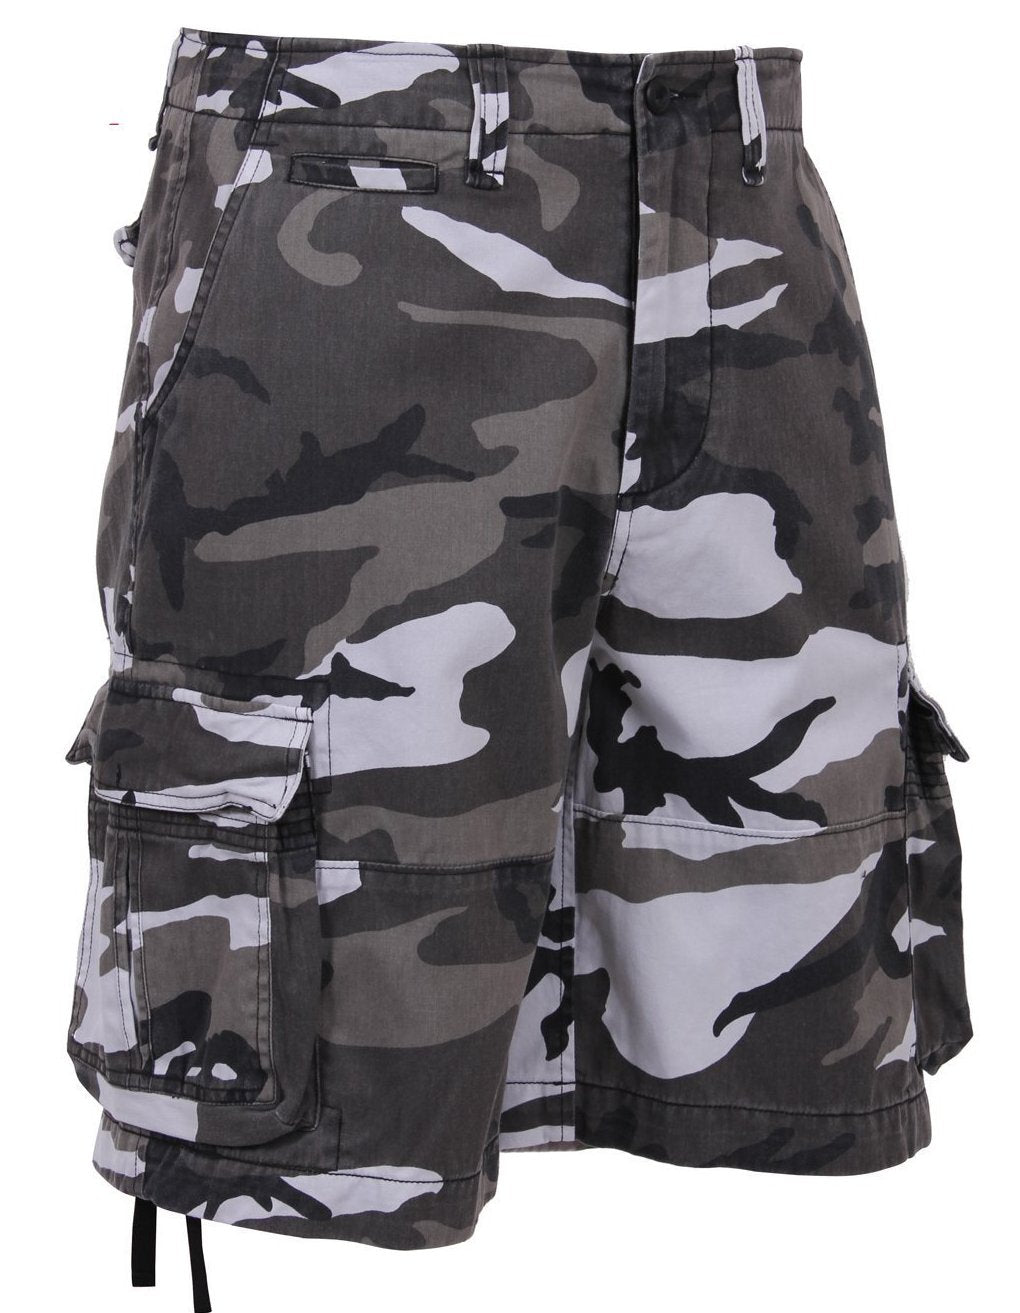 City Camo Cargo Shorts - №365 Outfitters